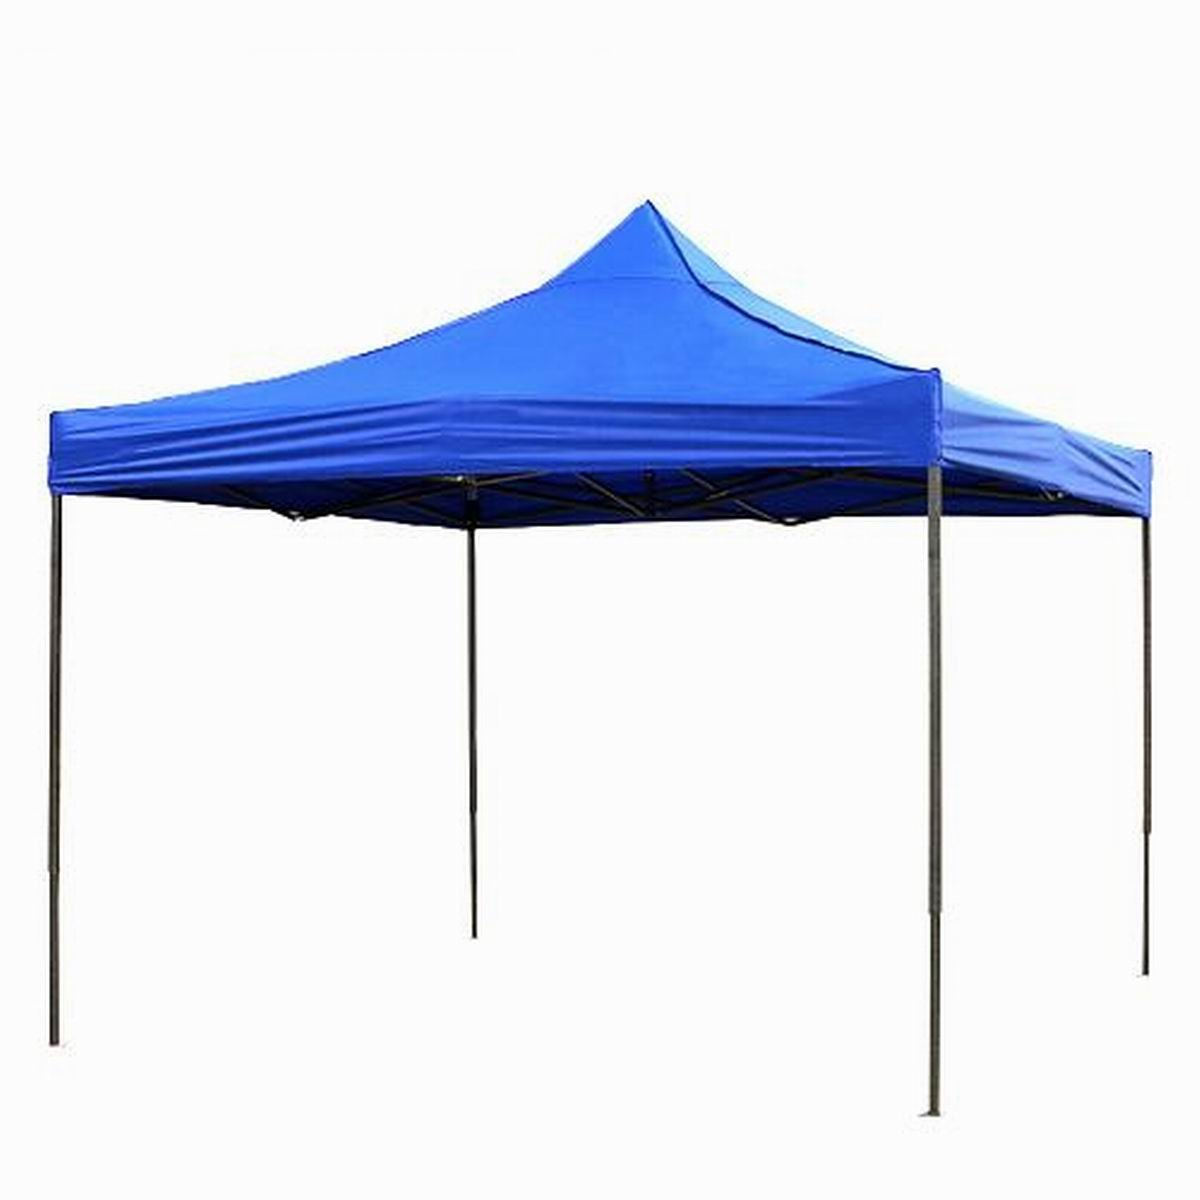 Amazon.com  Weekly Promotion 15% Discount off for Folding Canopy Lightweight Gazebos outdoor pop up portable shade Blue 10 By 10-feet by Qisan  Garden u0026 ...  sc 1 st  Amazon.com & Amazon.com : Weekly Promotion 15% Discount off for Folding Canopy ...